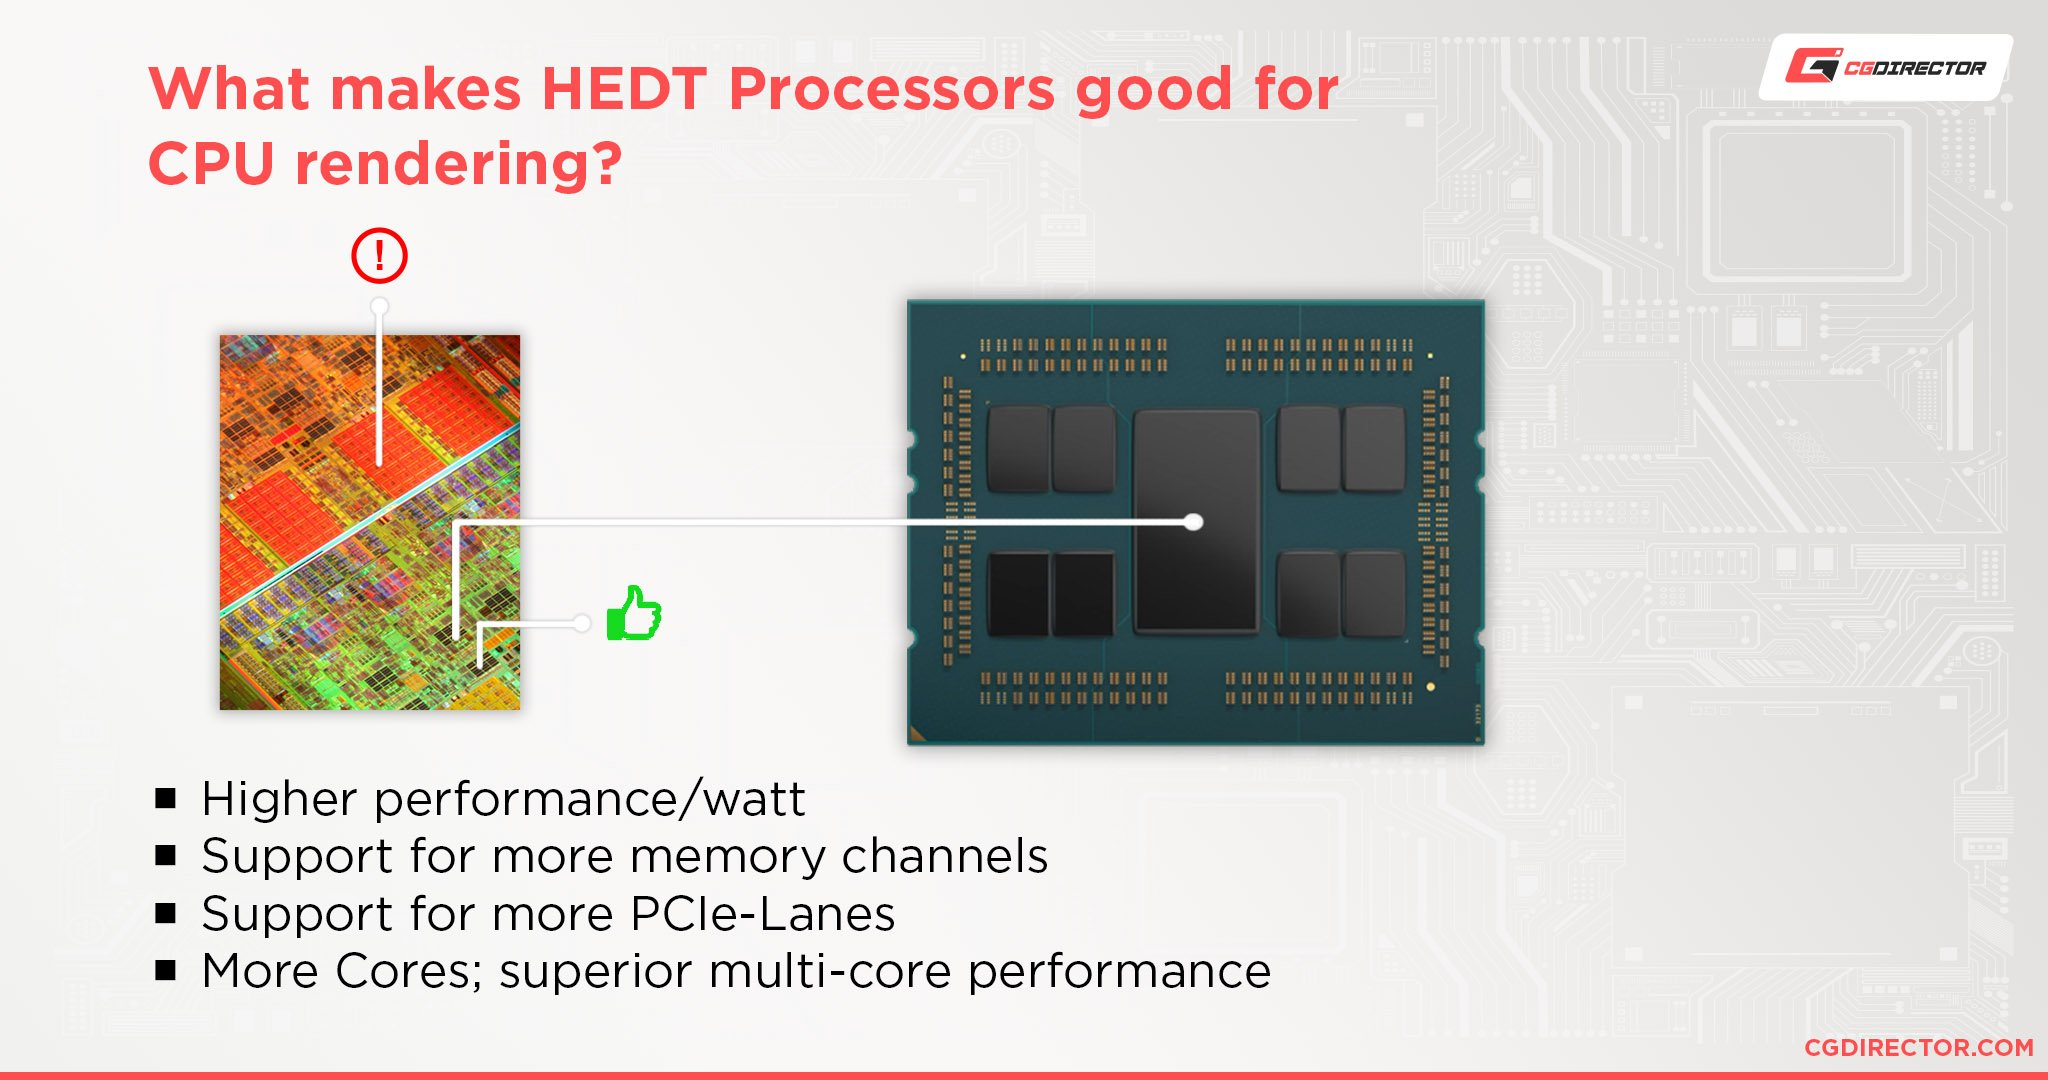 HEDT Processors